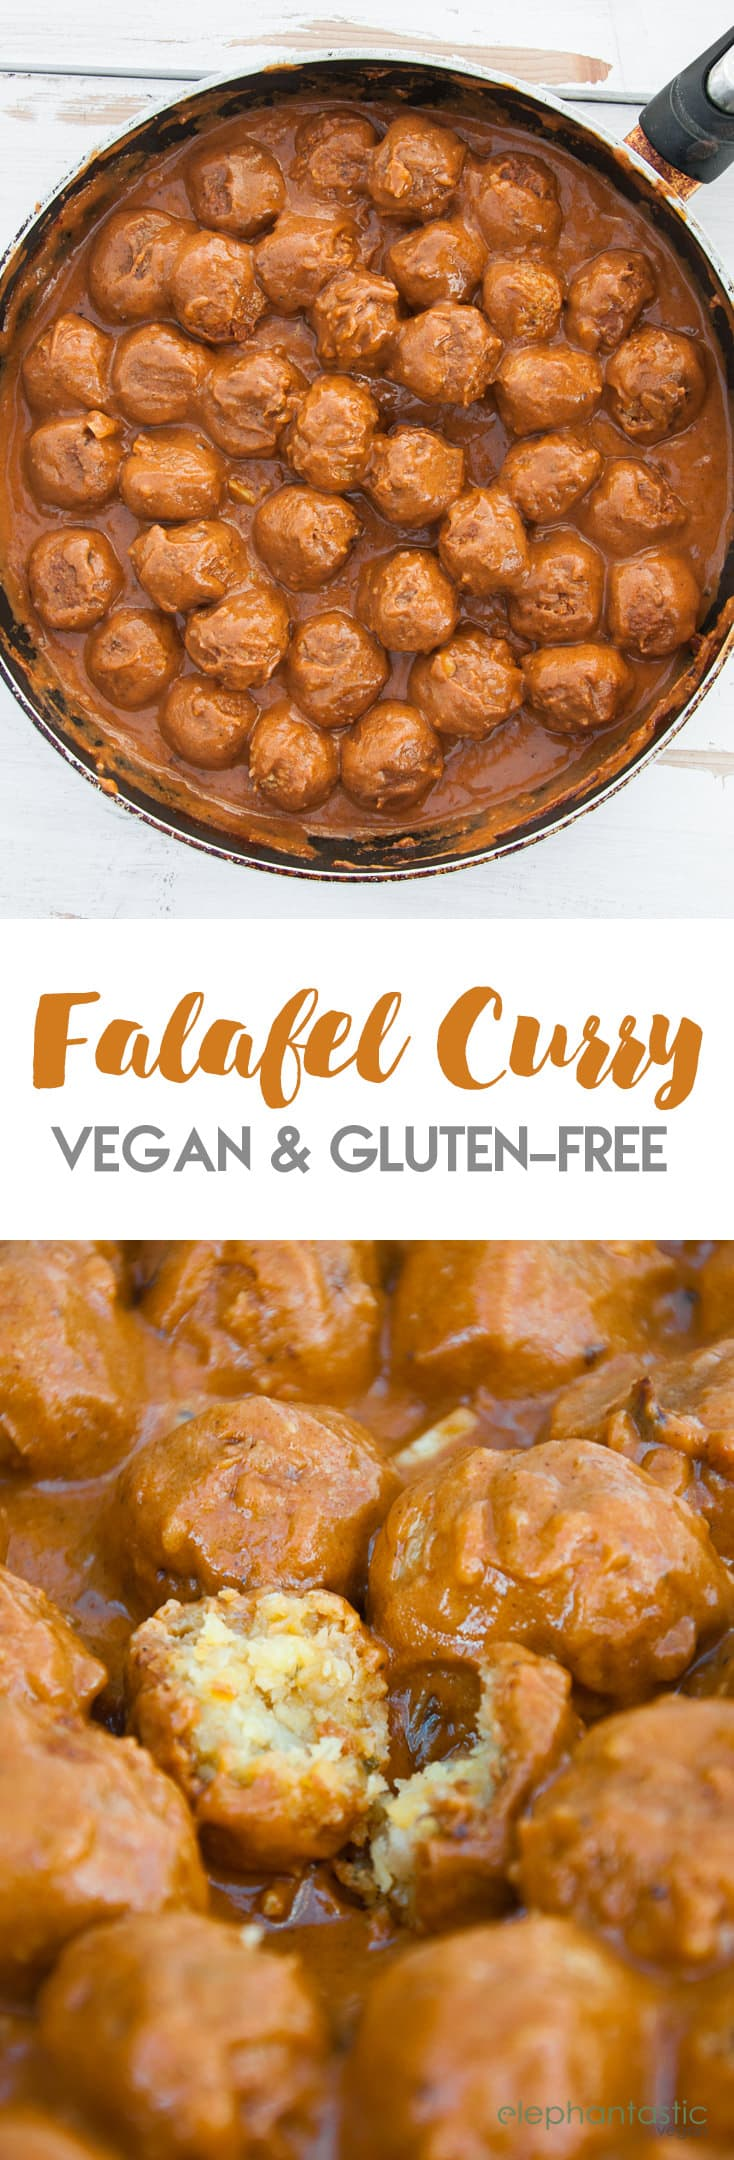 Vegan Falafel Curry - We all love falafel and we all love curries, so why not combine them?! This vegan Falafel Curry is a creamy dream come true! | ElephantasticVegan.com #vegan #glutenfree #falafel #curry